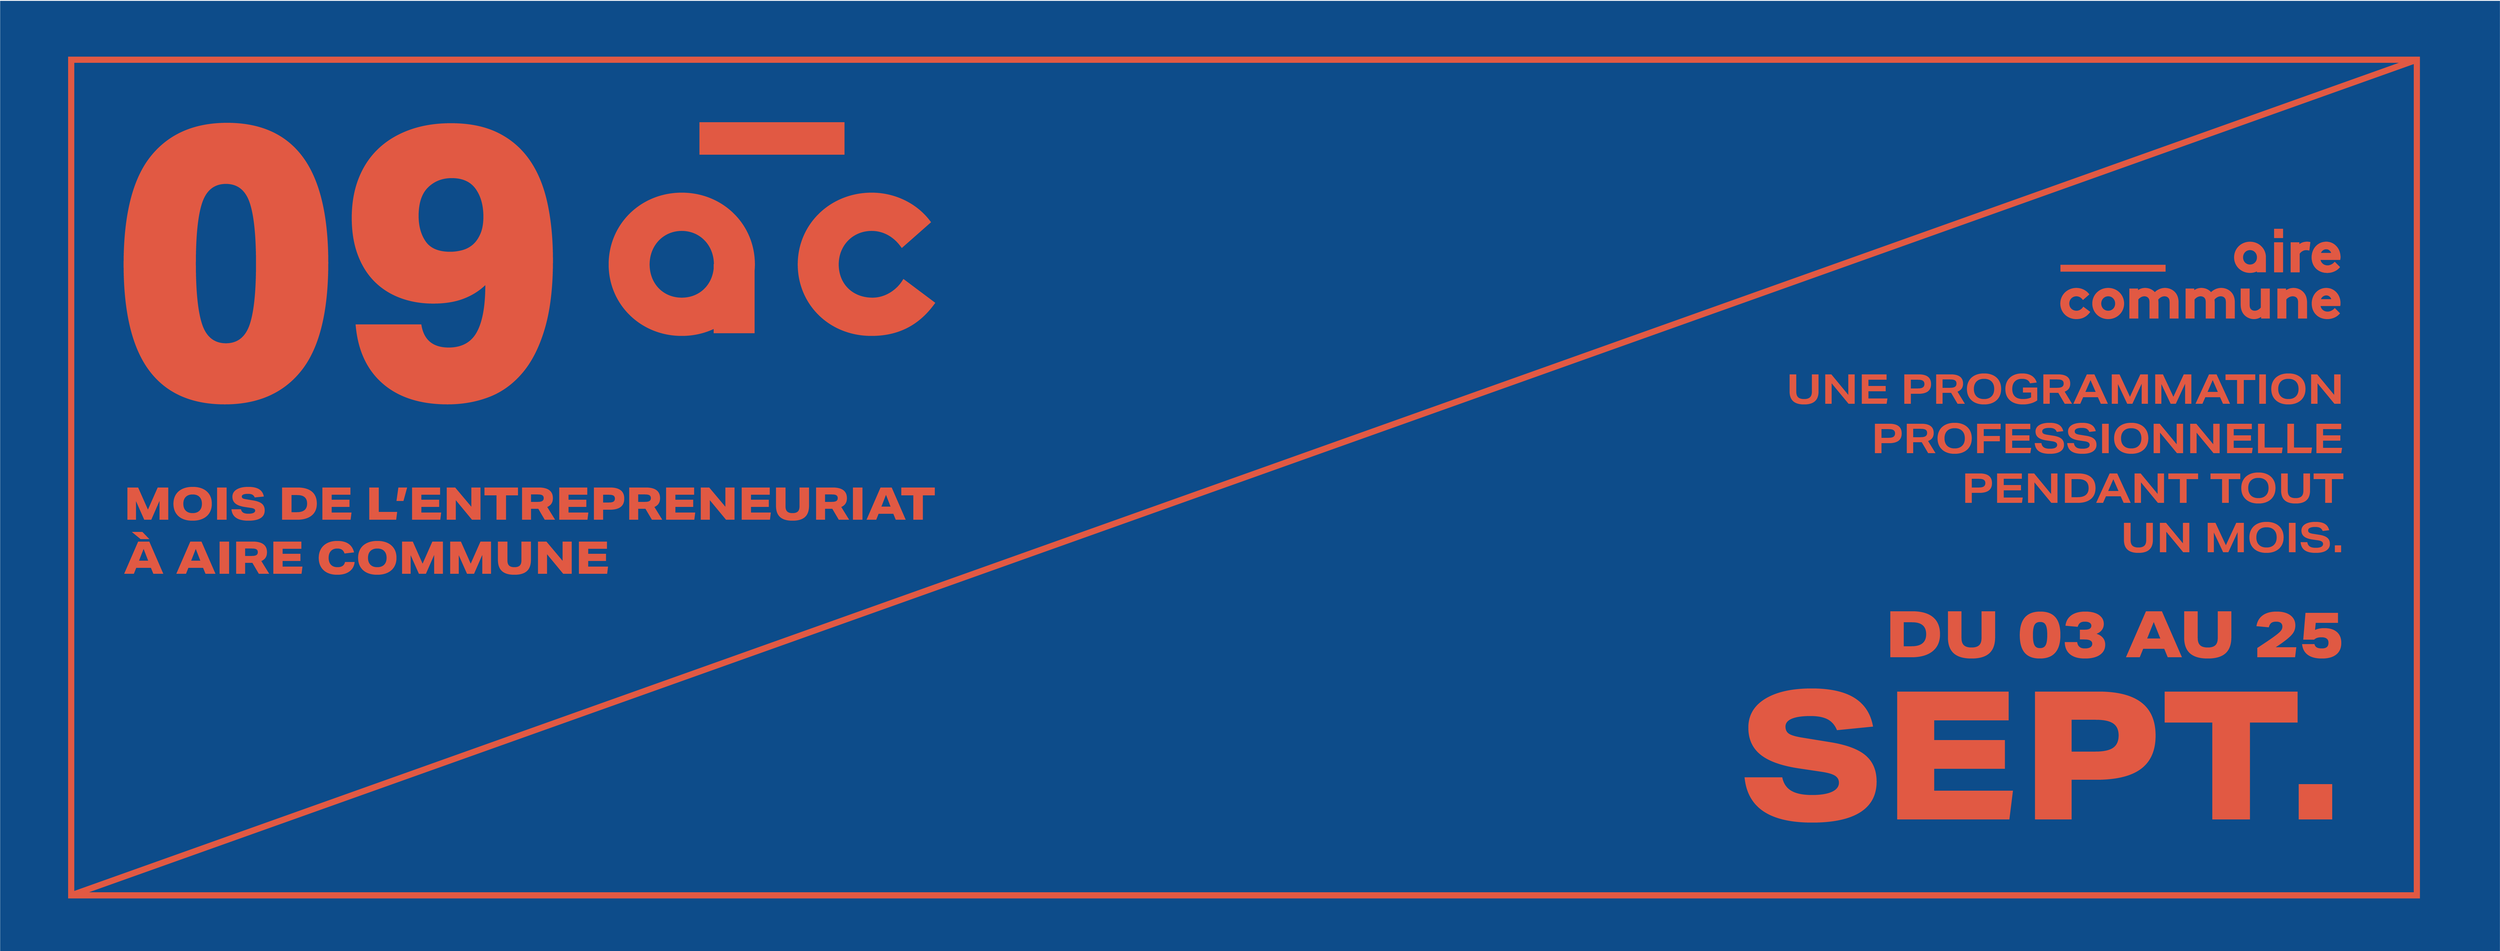 09ac_Events_GENERAL_COVERBANNER.png